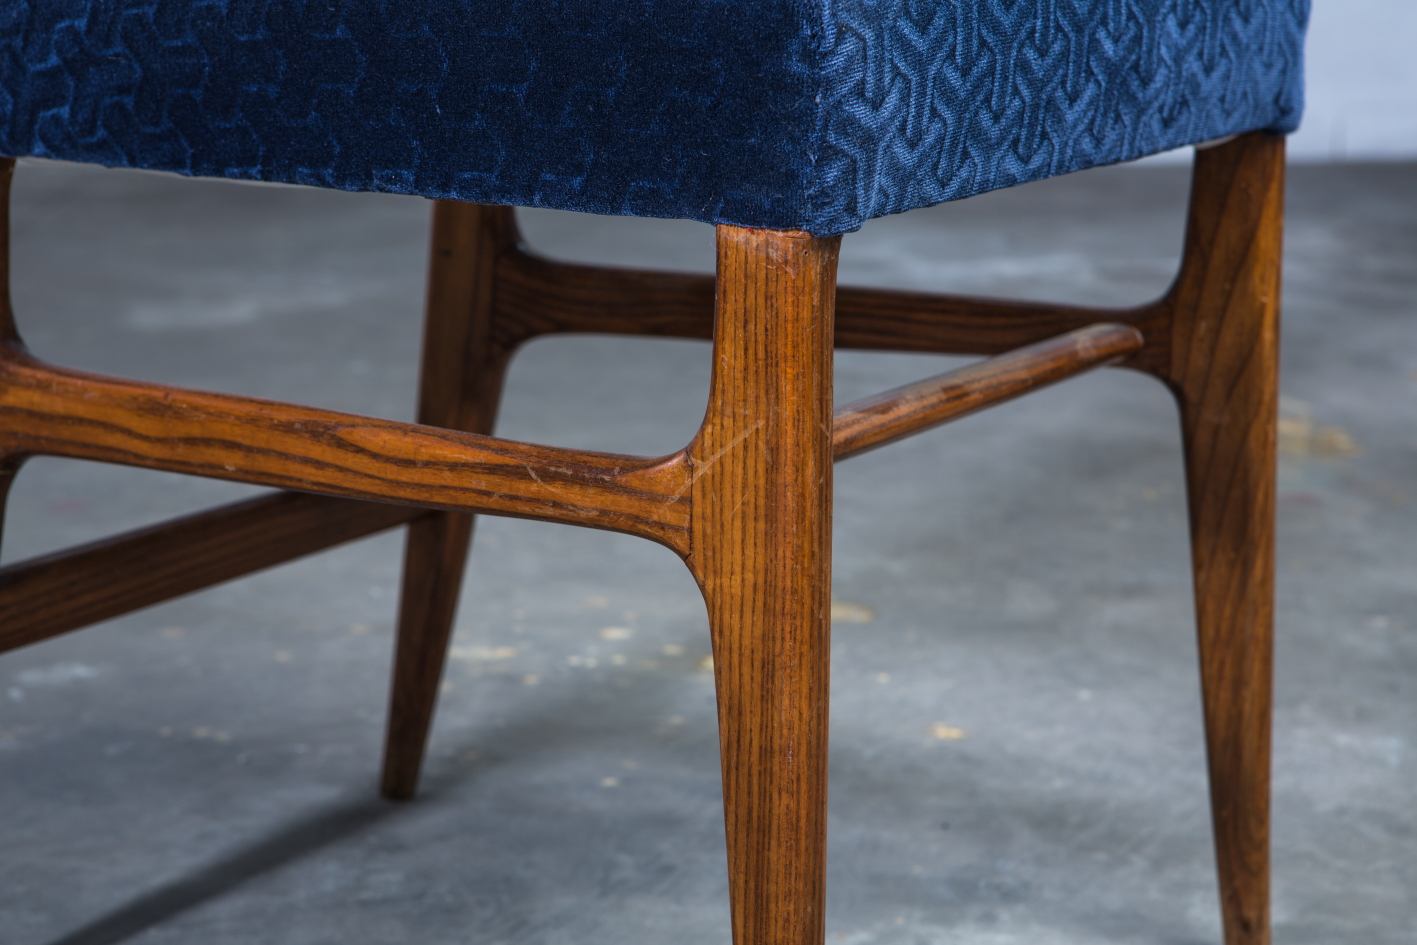 Six chairs designed by Gio Ponti for Figli di Amedeo Cassina (1950s) - Legs detail